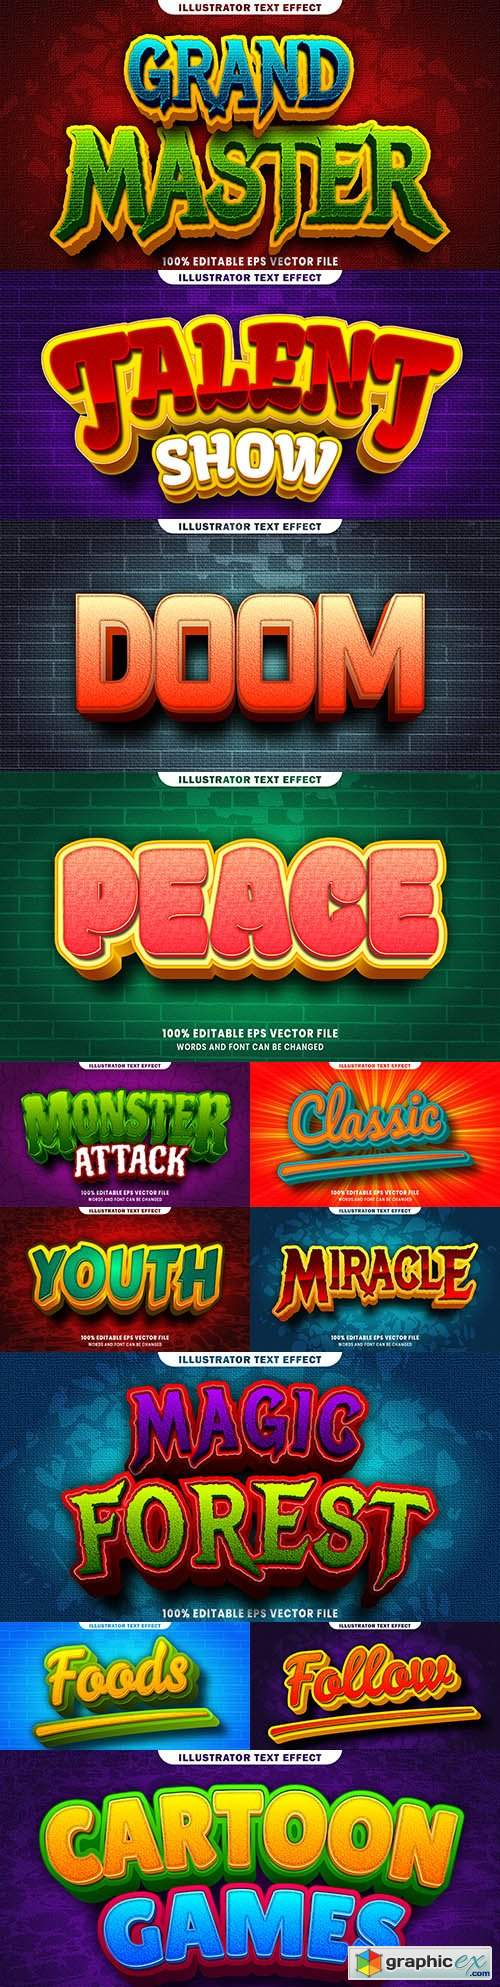 Editable font and 3d effect text design collection illustration 51